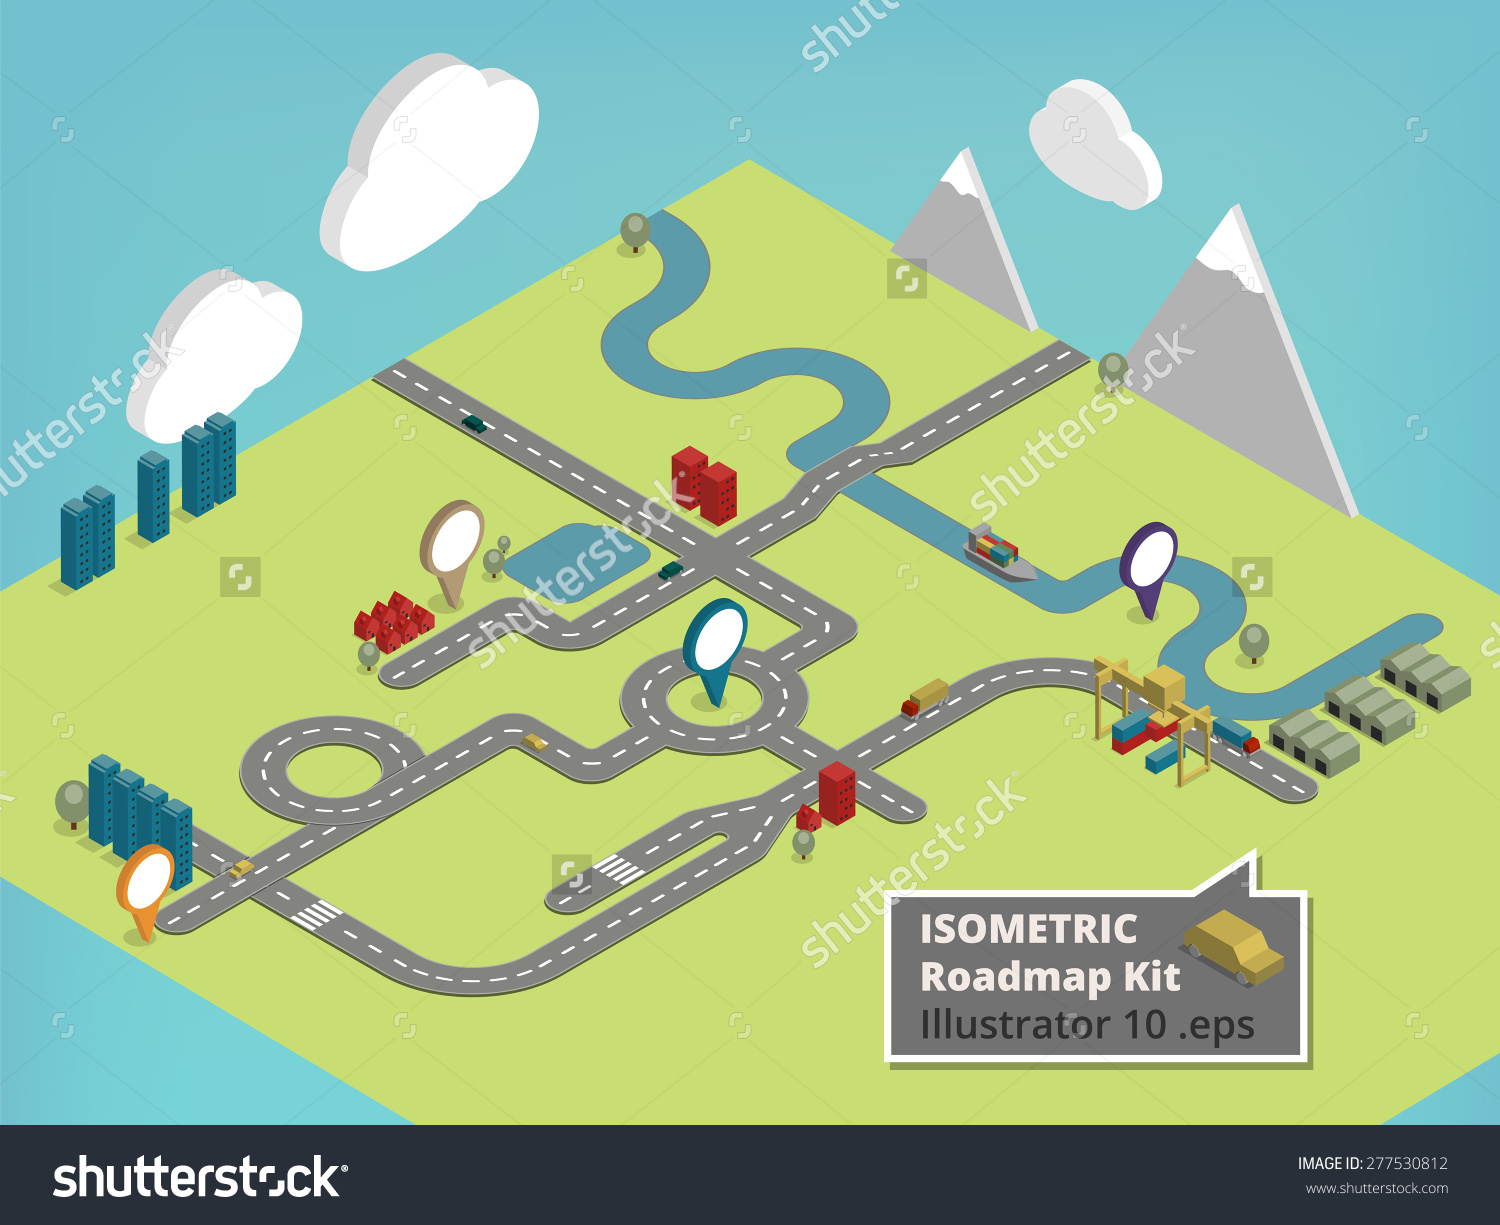 Clipart road map jpg black and white Simple road map clipart - ClipartFest jpg black and white